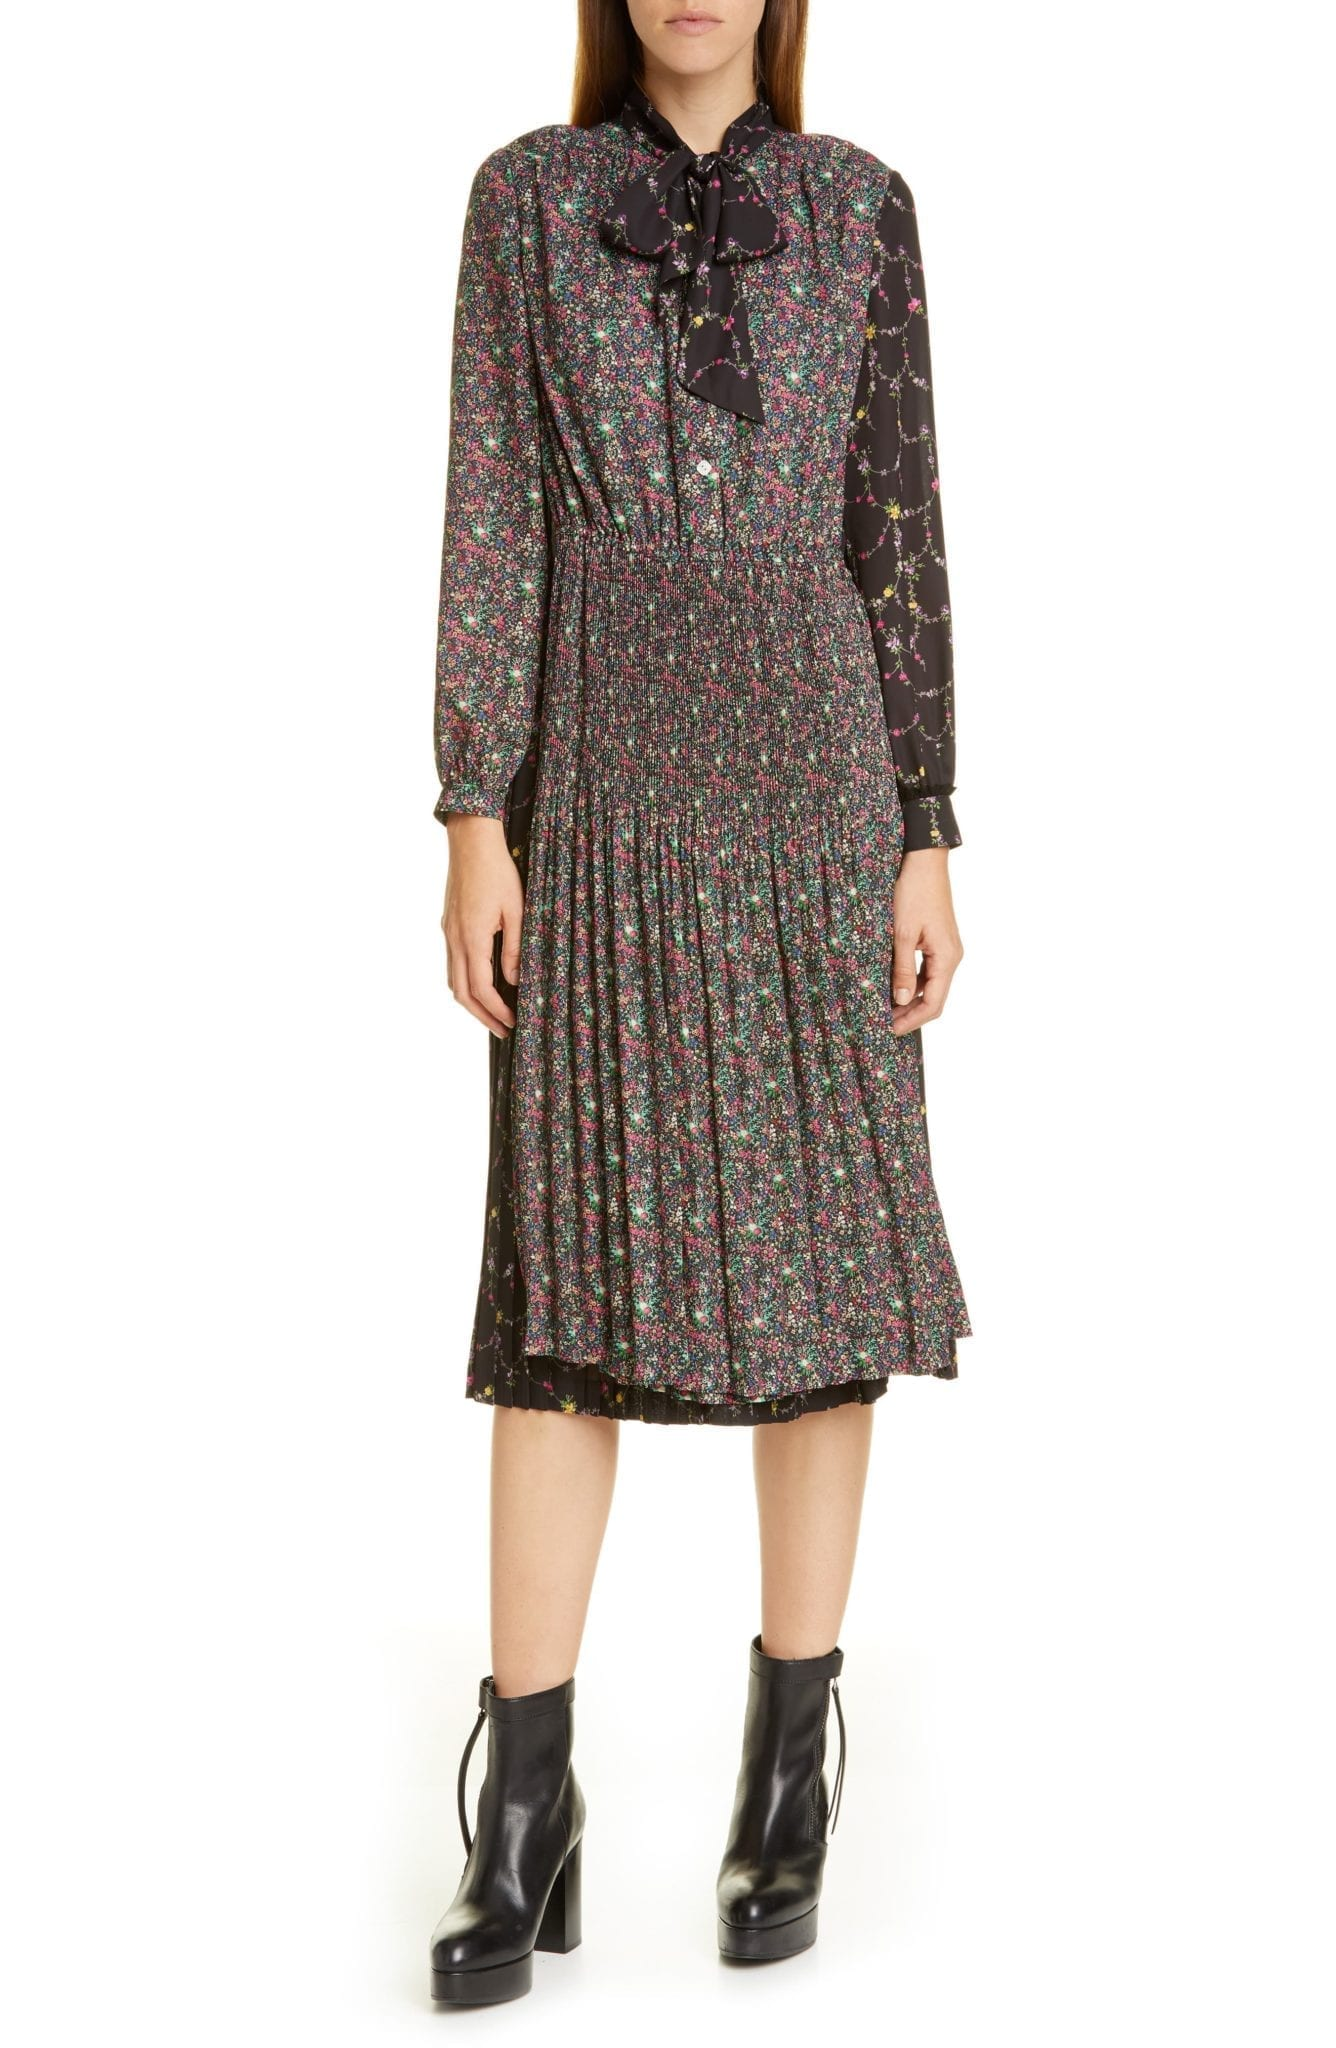 JUNYA WATANABE Mixed Floral Long Sleeve Midi Dress